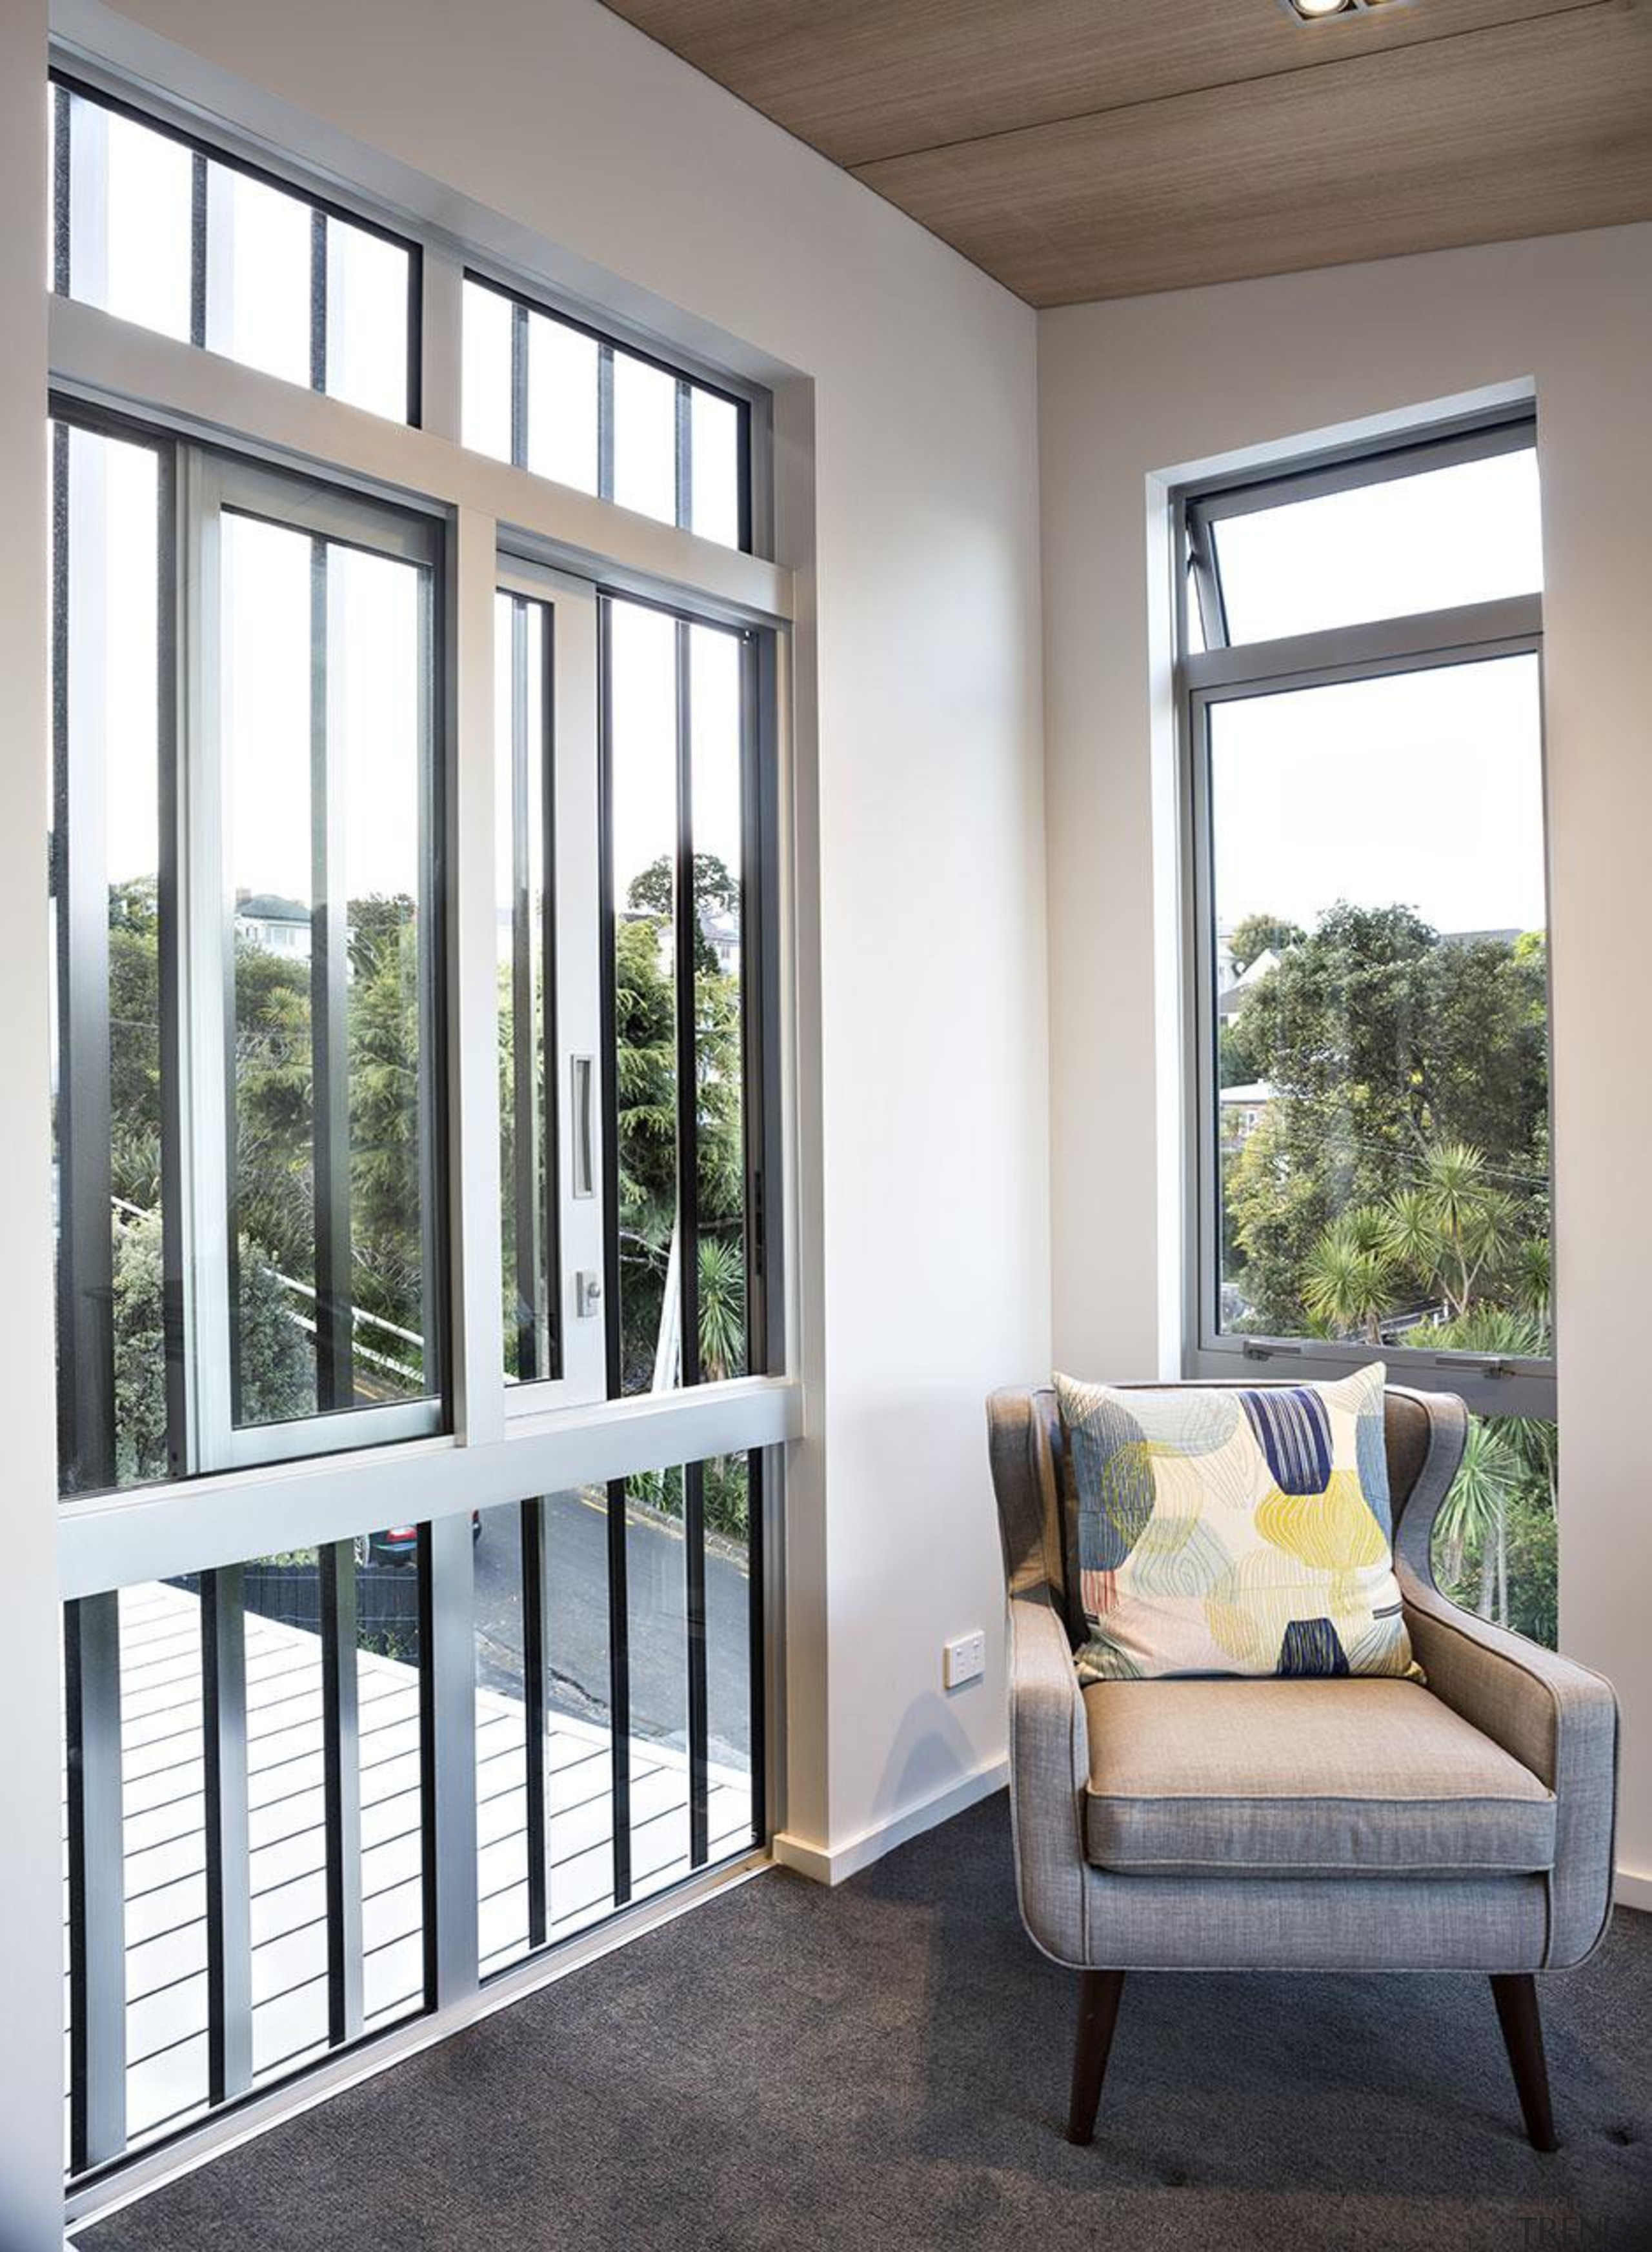 Eastern views are enjoyed from the formal living daylighting, door, estate, home, house, interior design, living room, real estate, sash window, window, white, gray